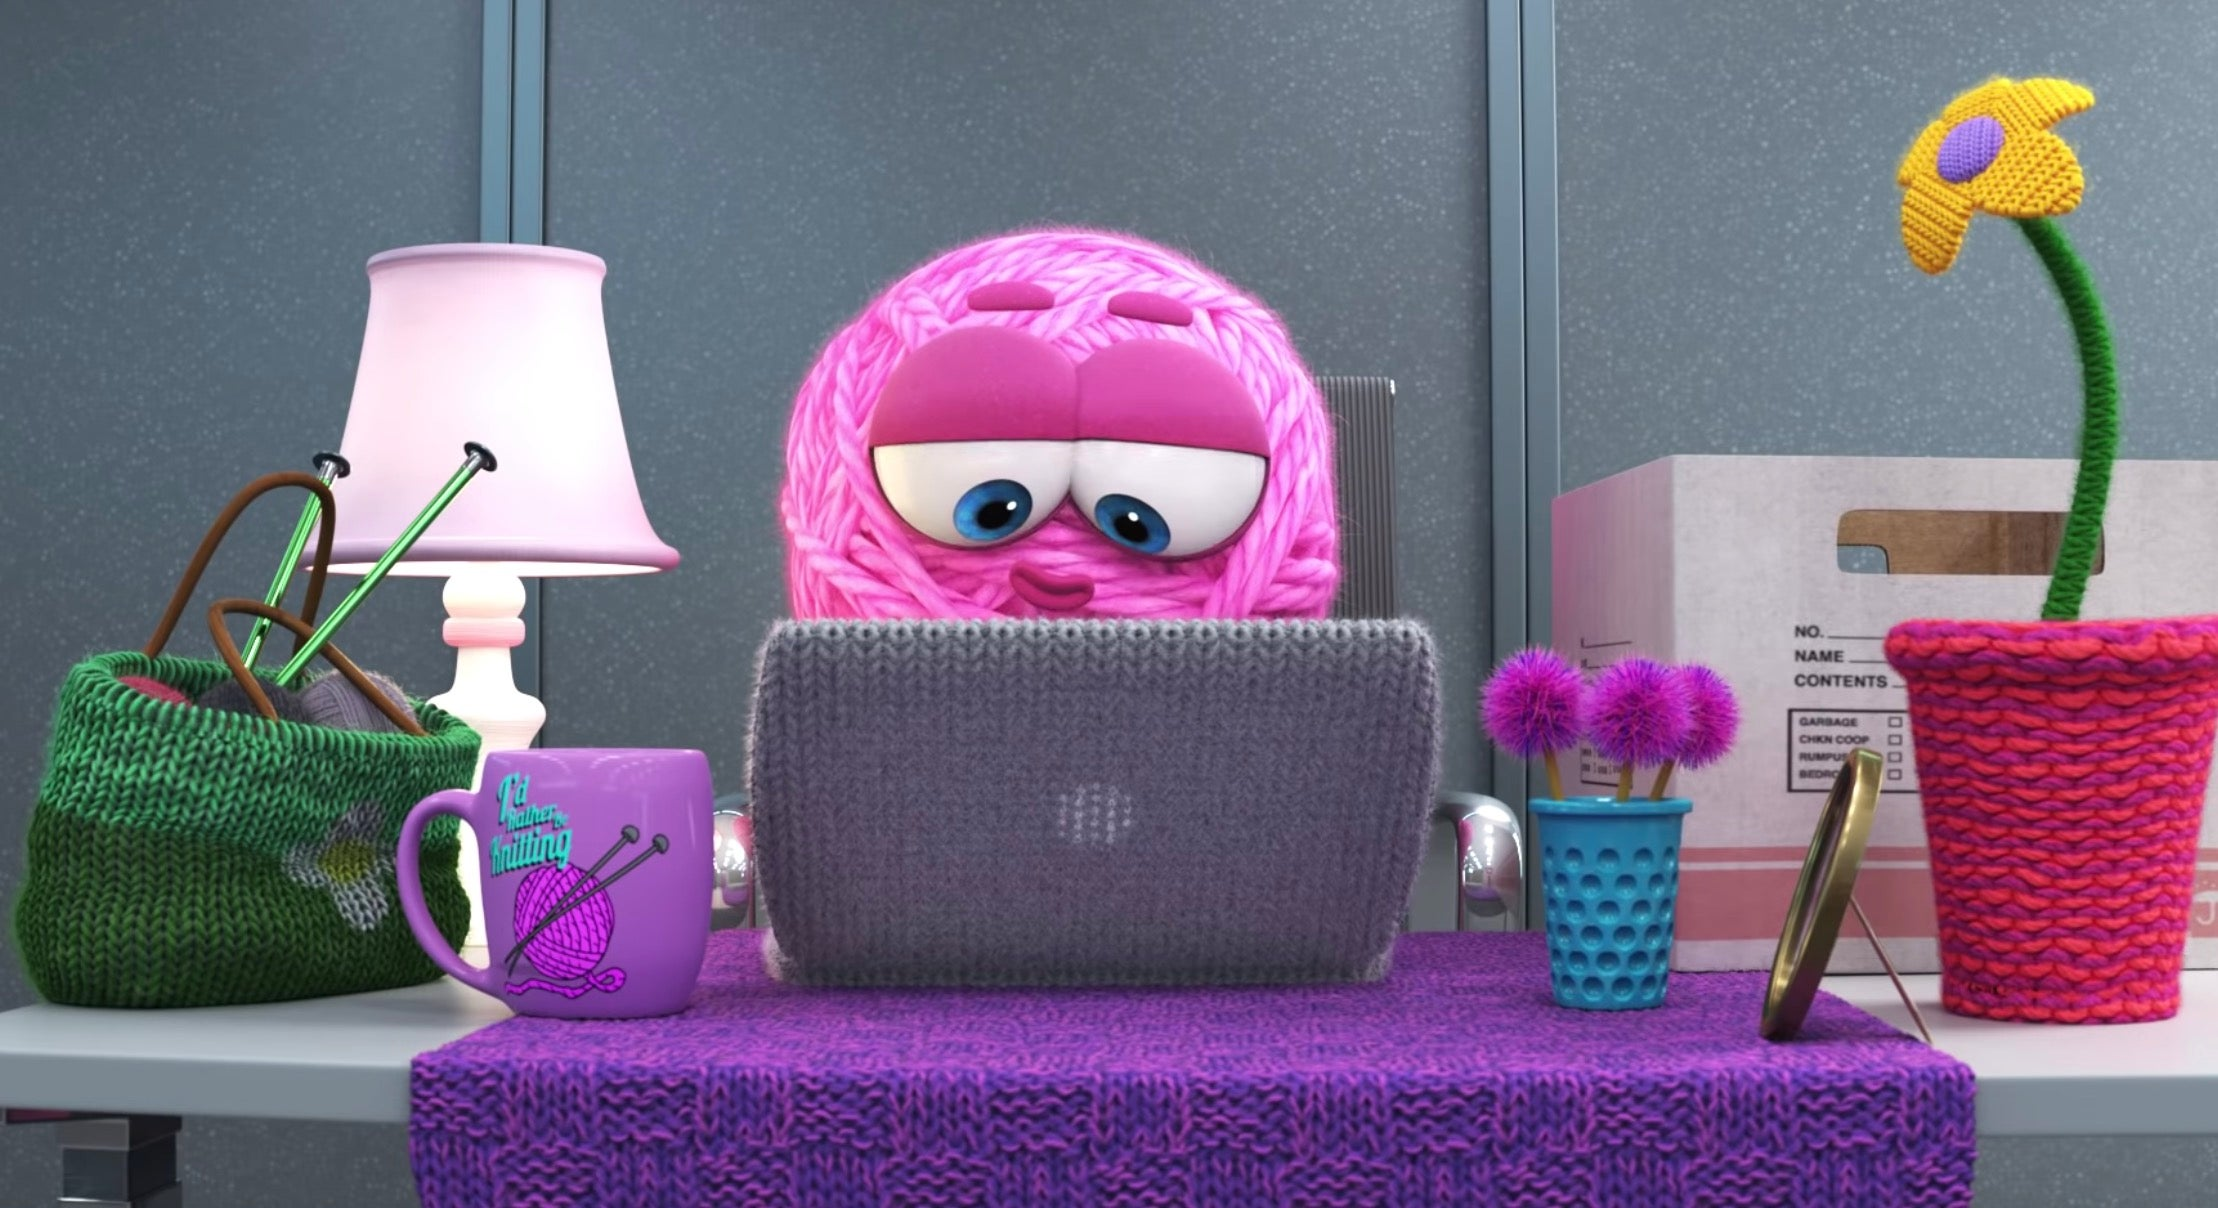 Watch A Brand New Pixar Short From The Comfort Of Your Computer